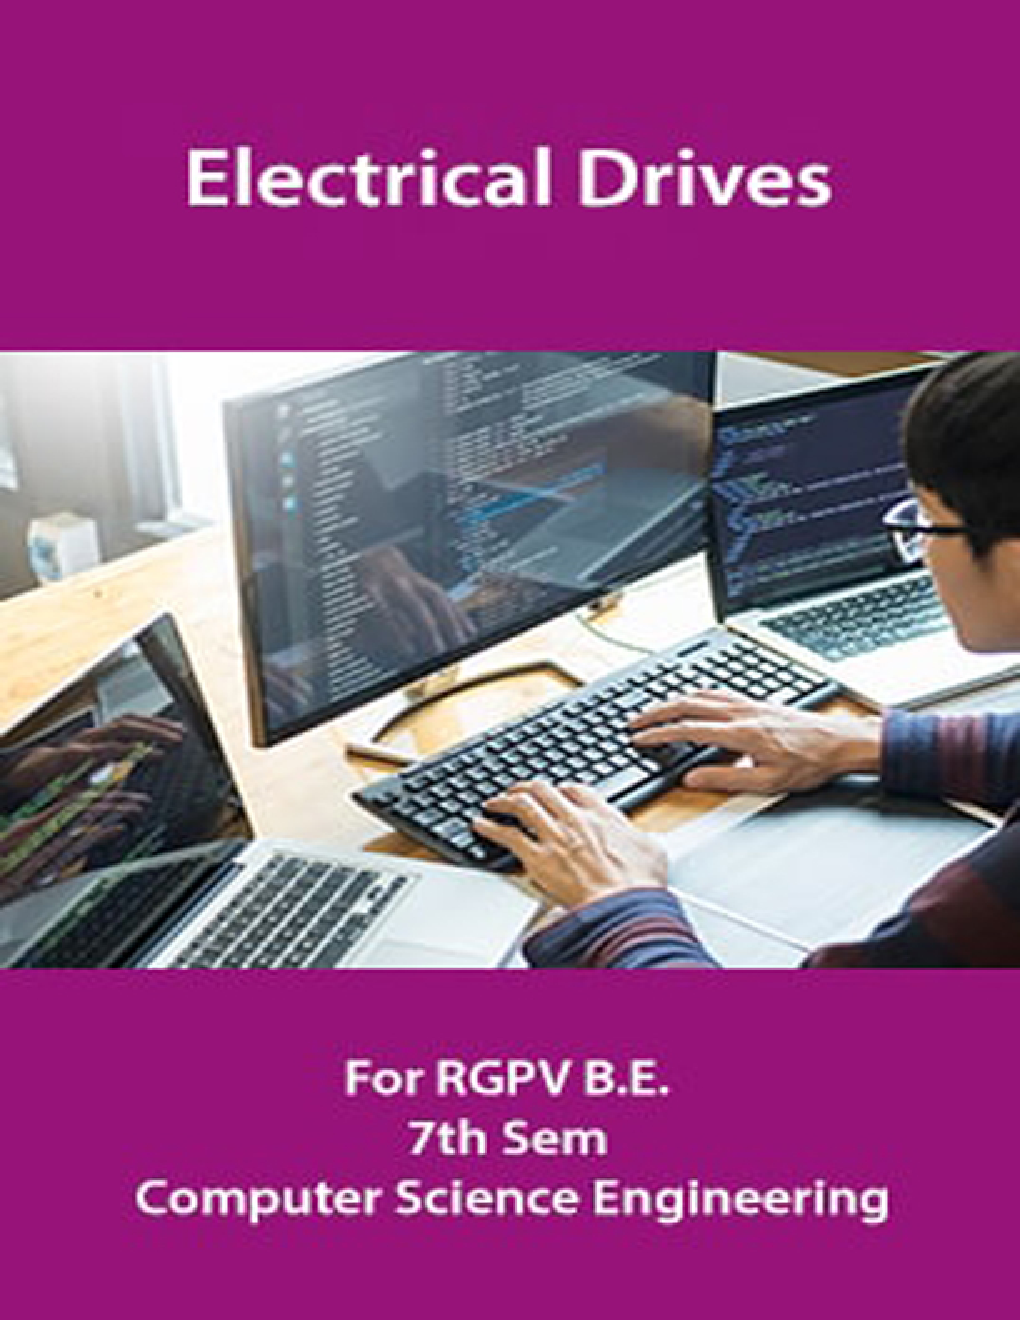 Electrical Drives For RGPV B.E. 7th Sem Computer Science Engineering - Page 1